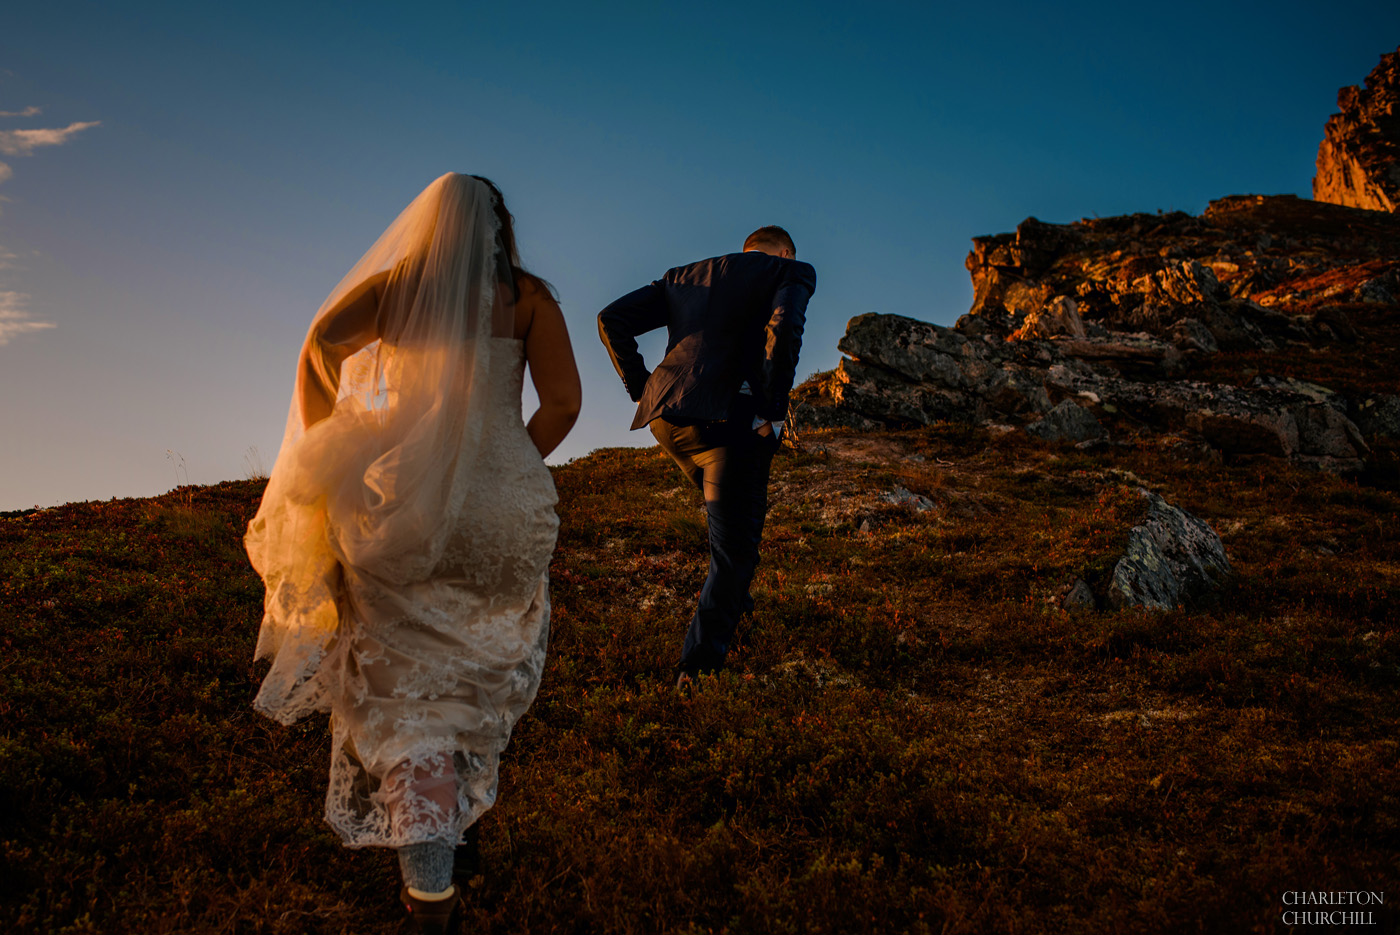 hikers in a wedding dress and suit hiking up the mountain